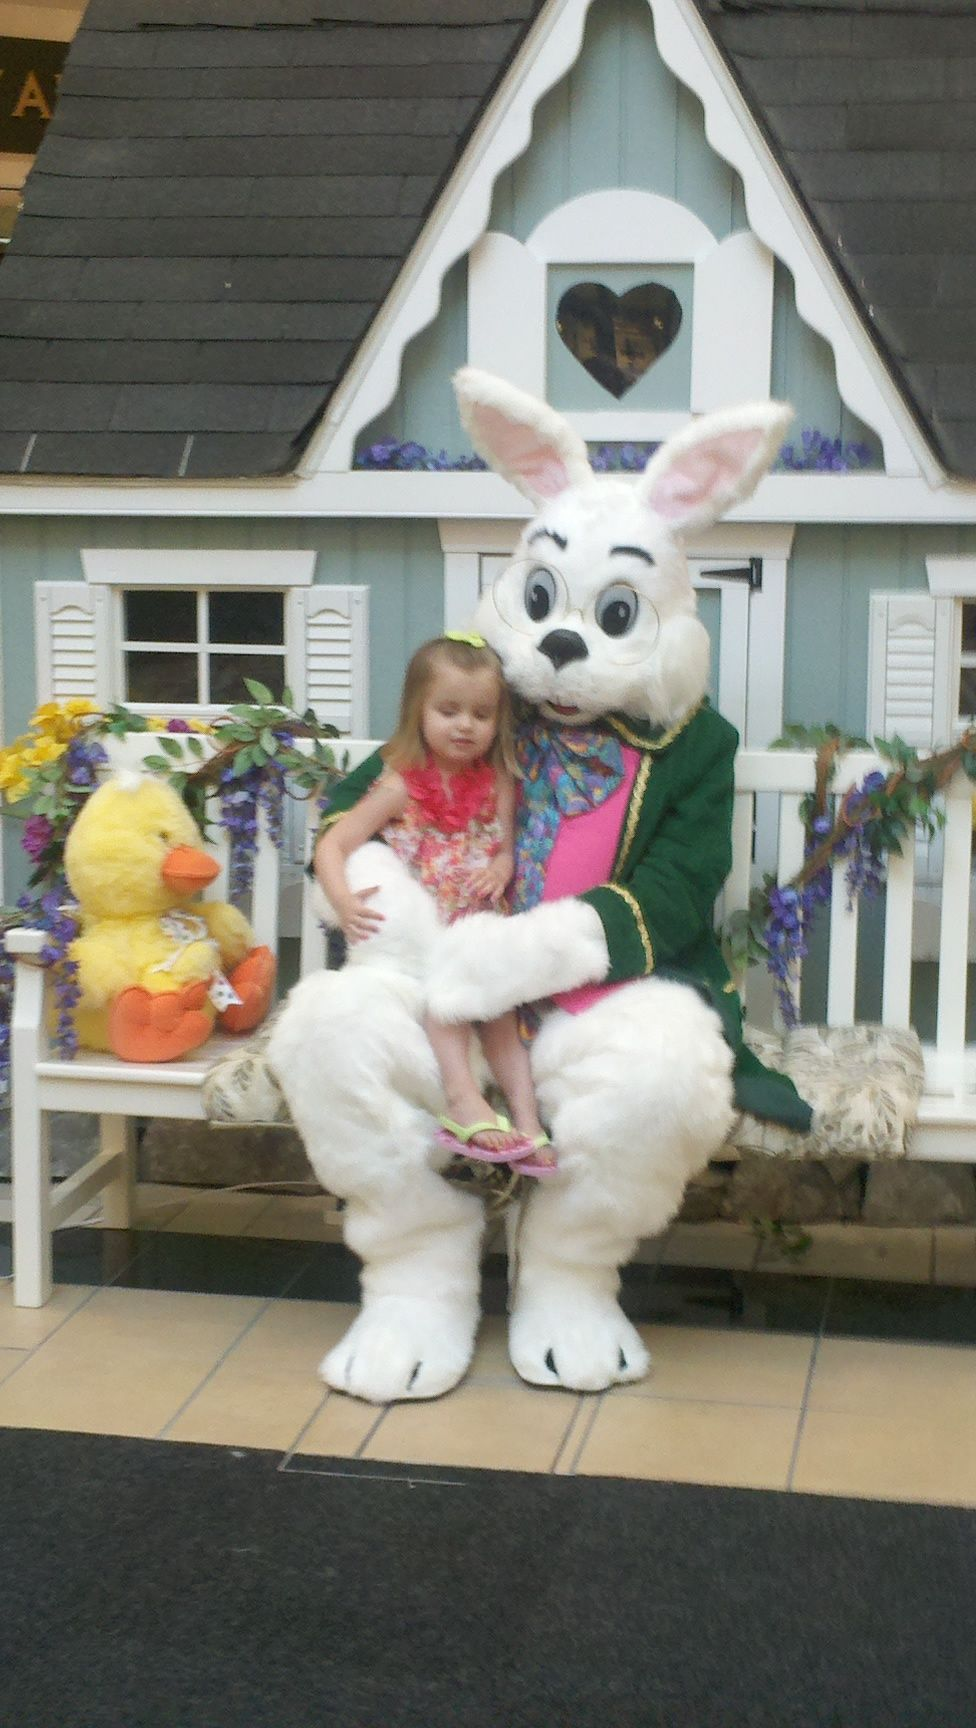 Easter bunny fun you werent scared either claire just so you